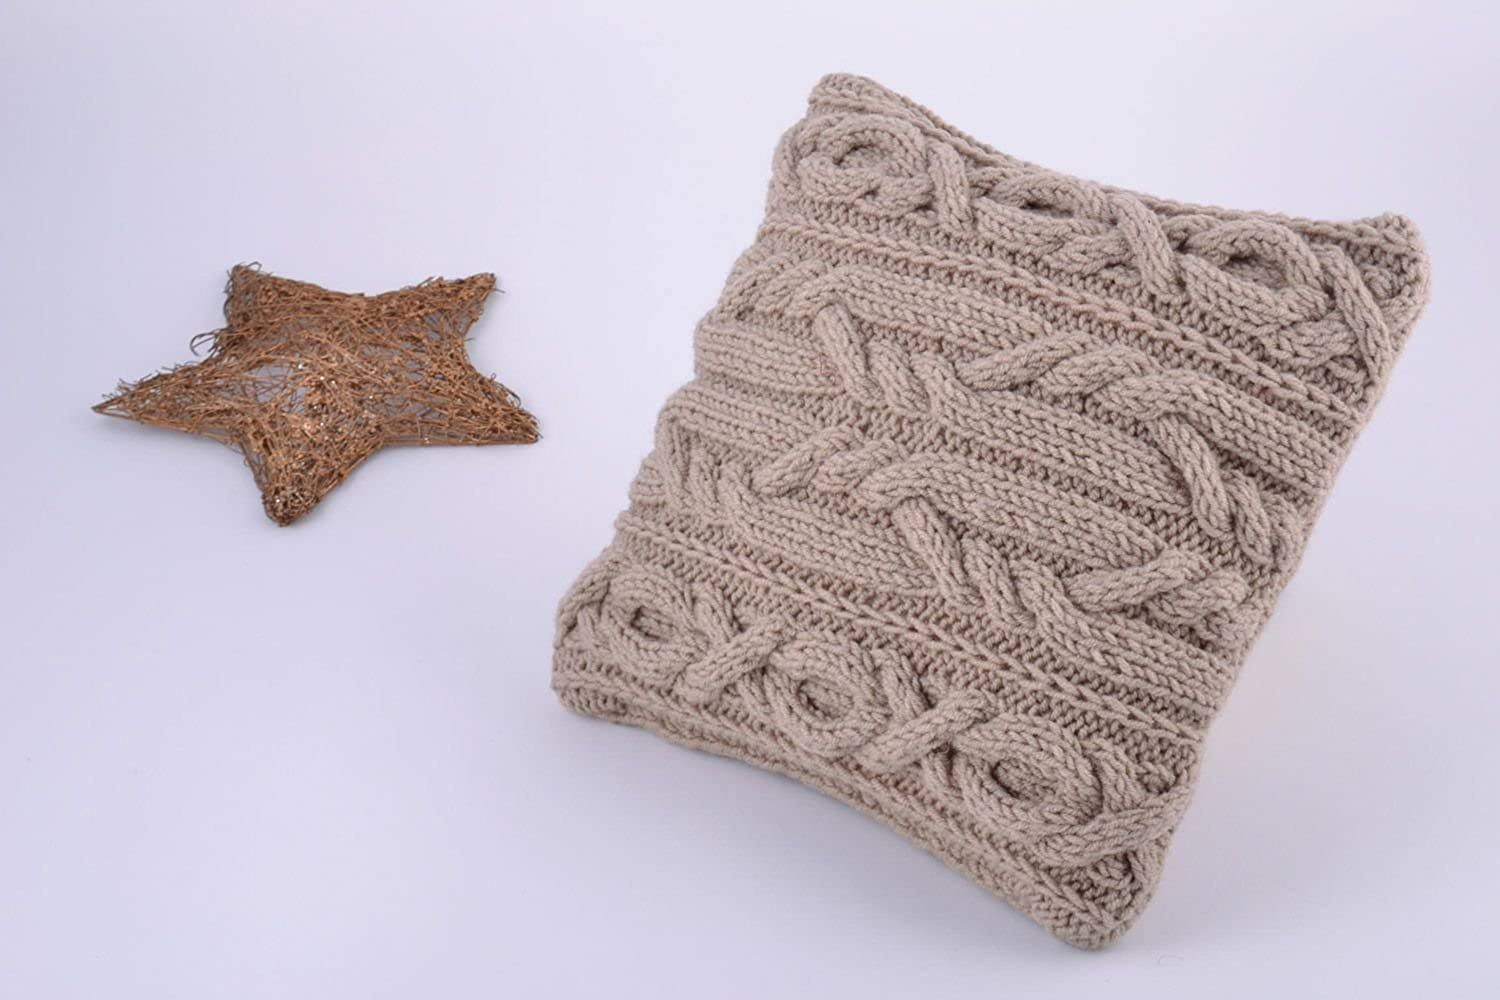 Handmade Semi Woolen Knitted Cushion Cover Of Coffee With Milk color With Zipper